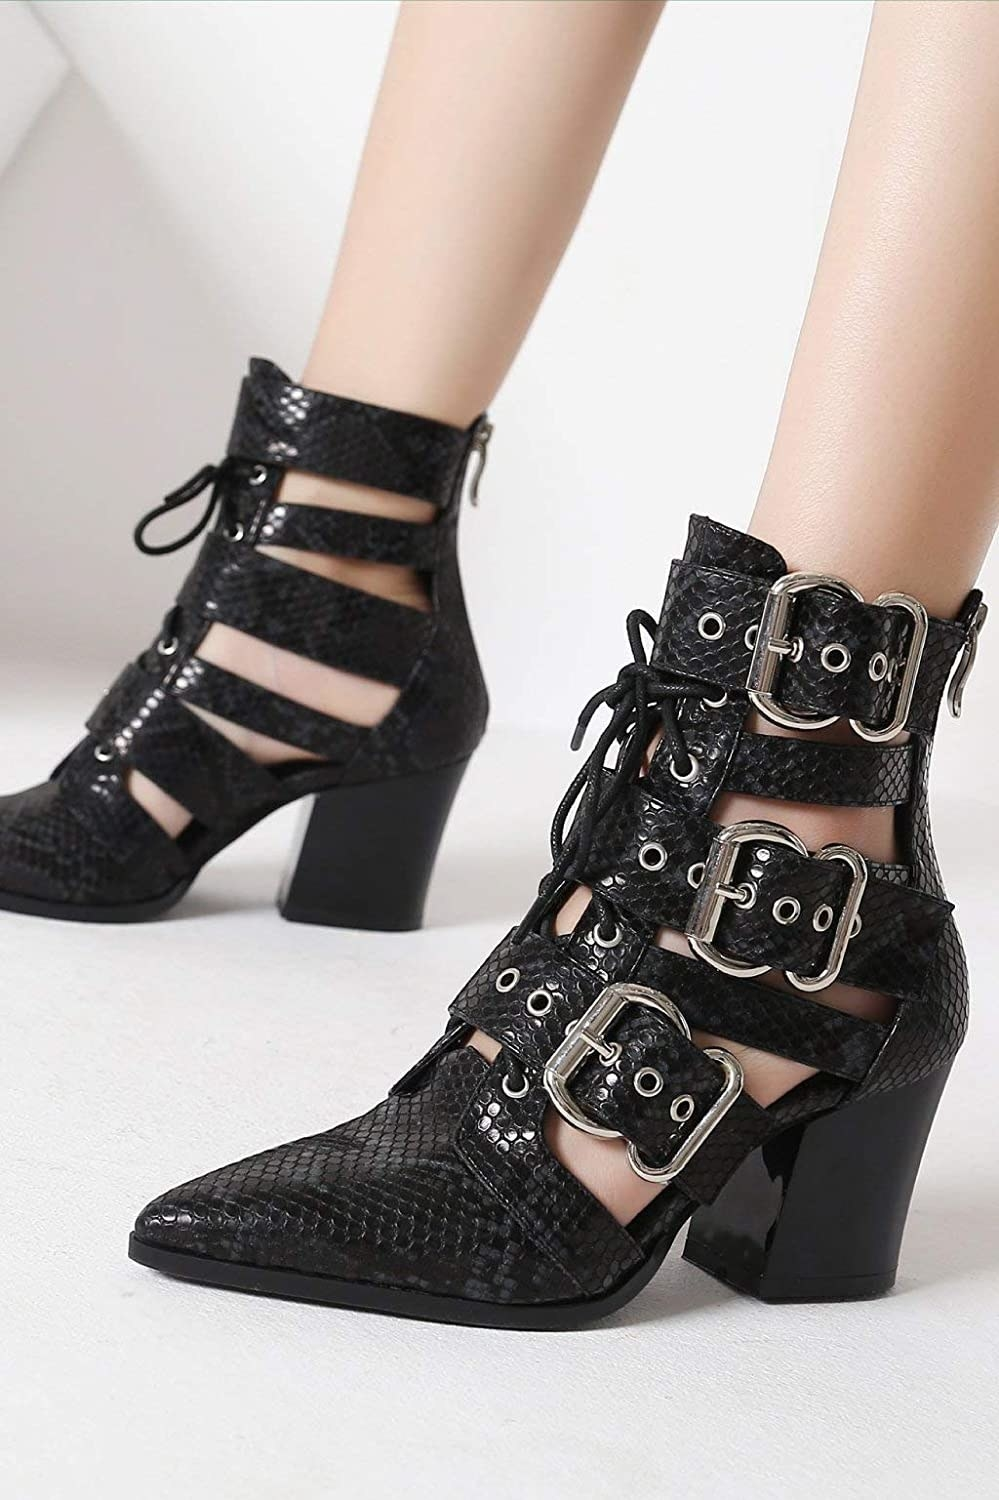 The black lace-up and buckled booties with a chunky heel and silver hardware